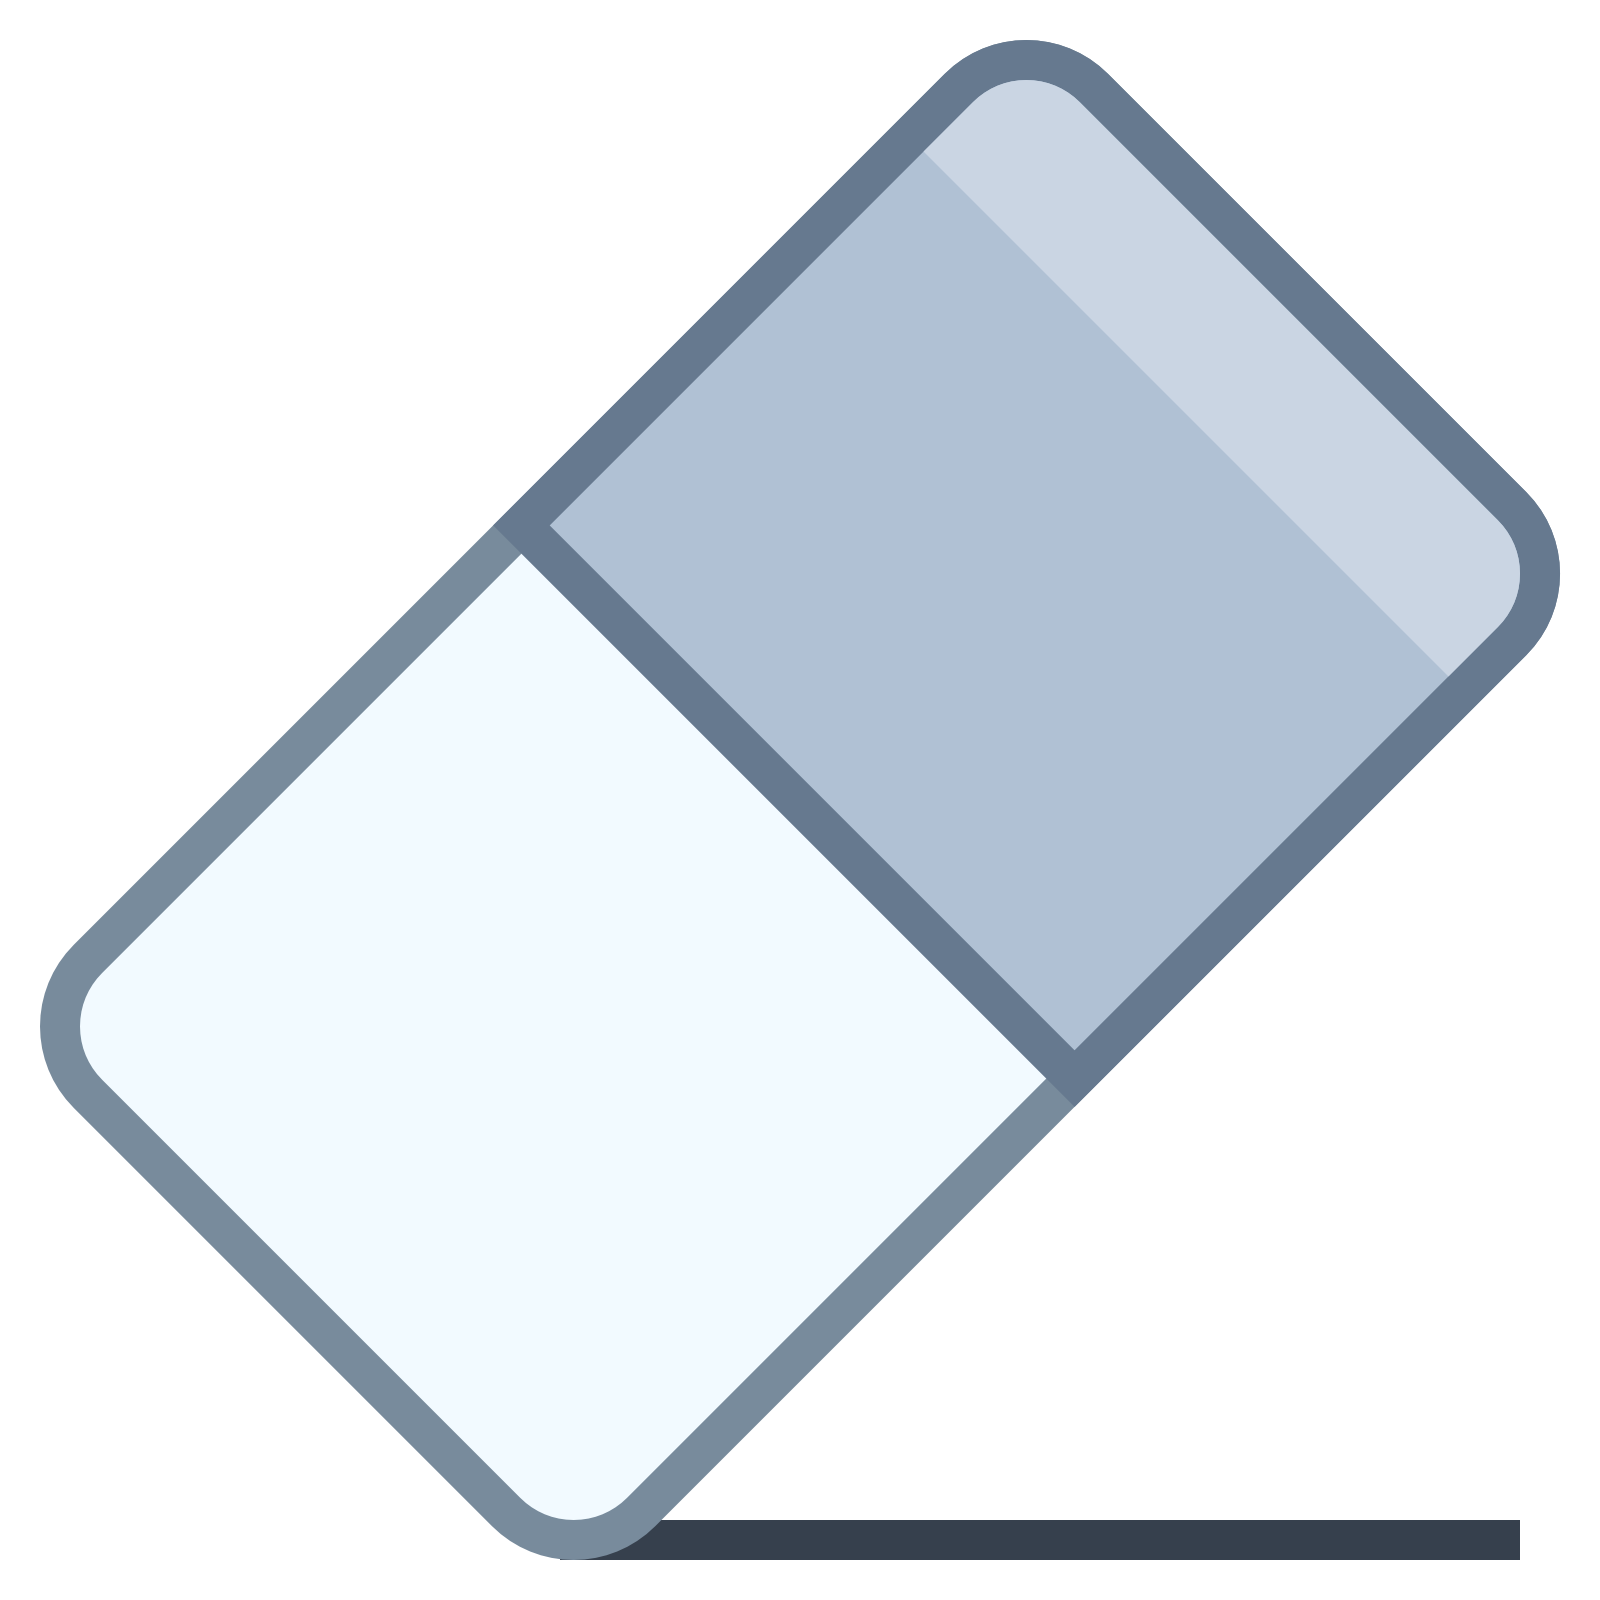 Png . Eraser clipart rubber material